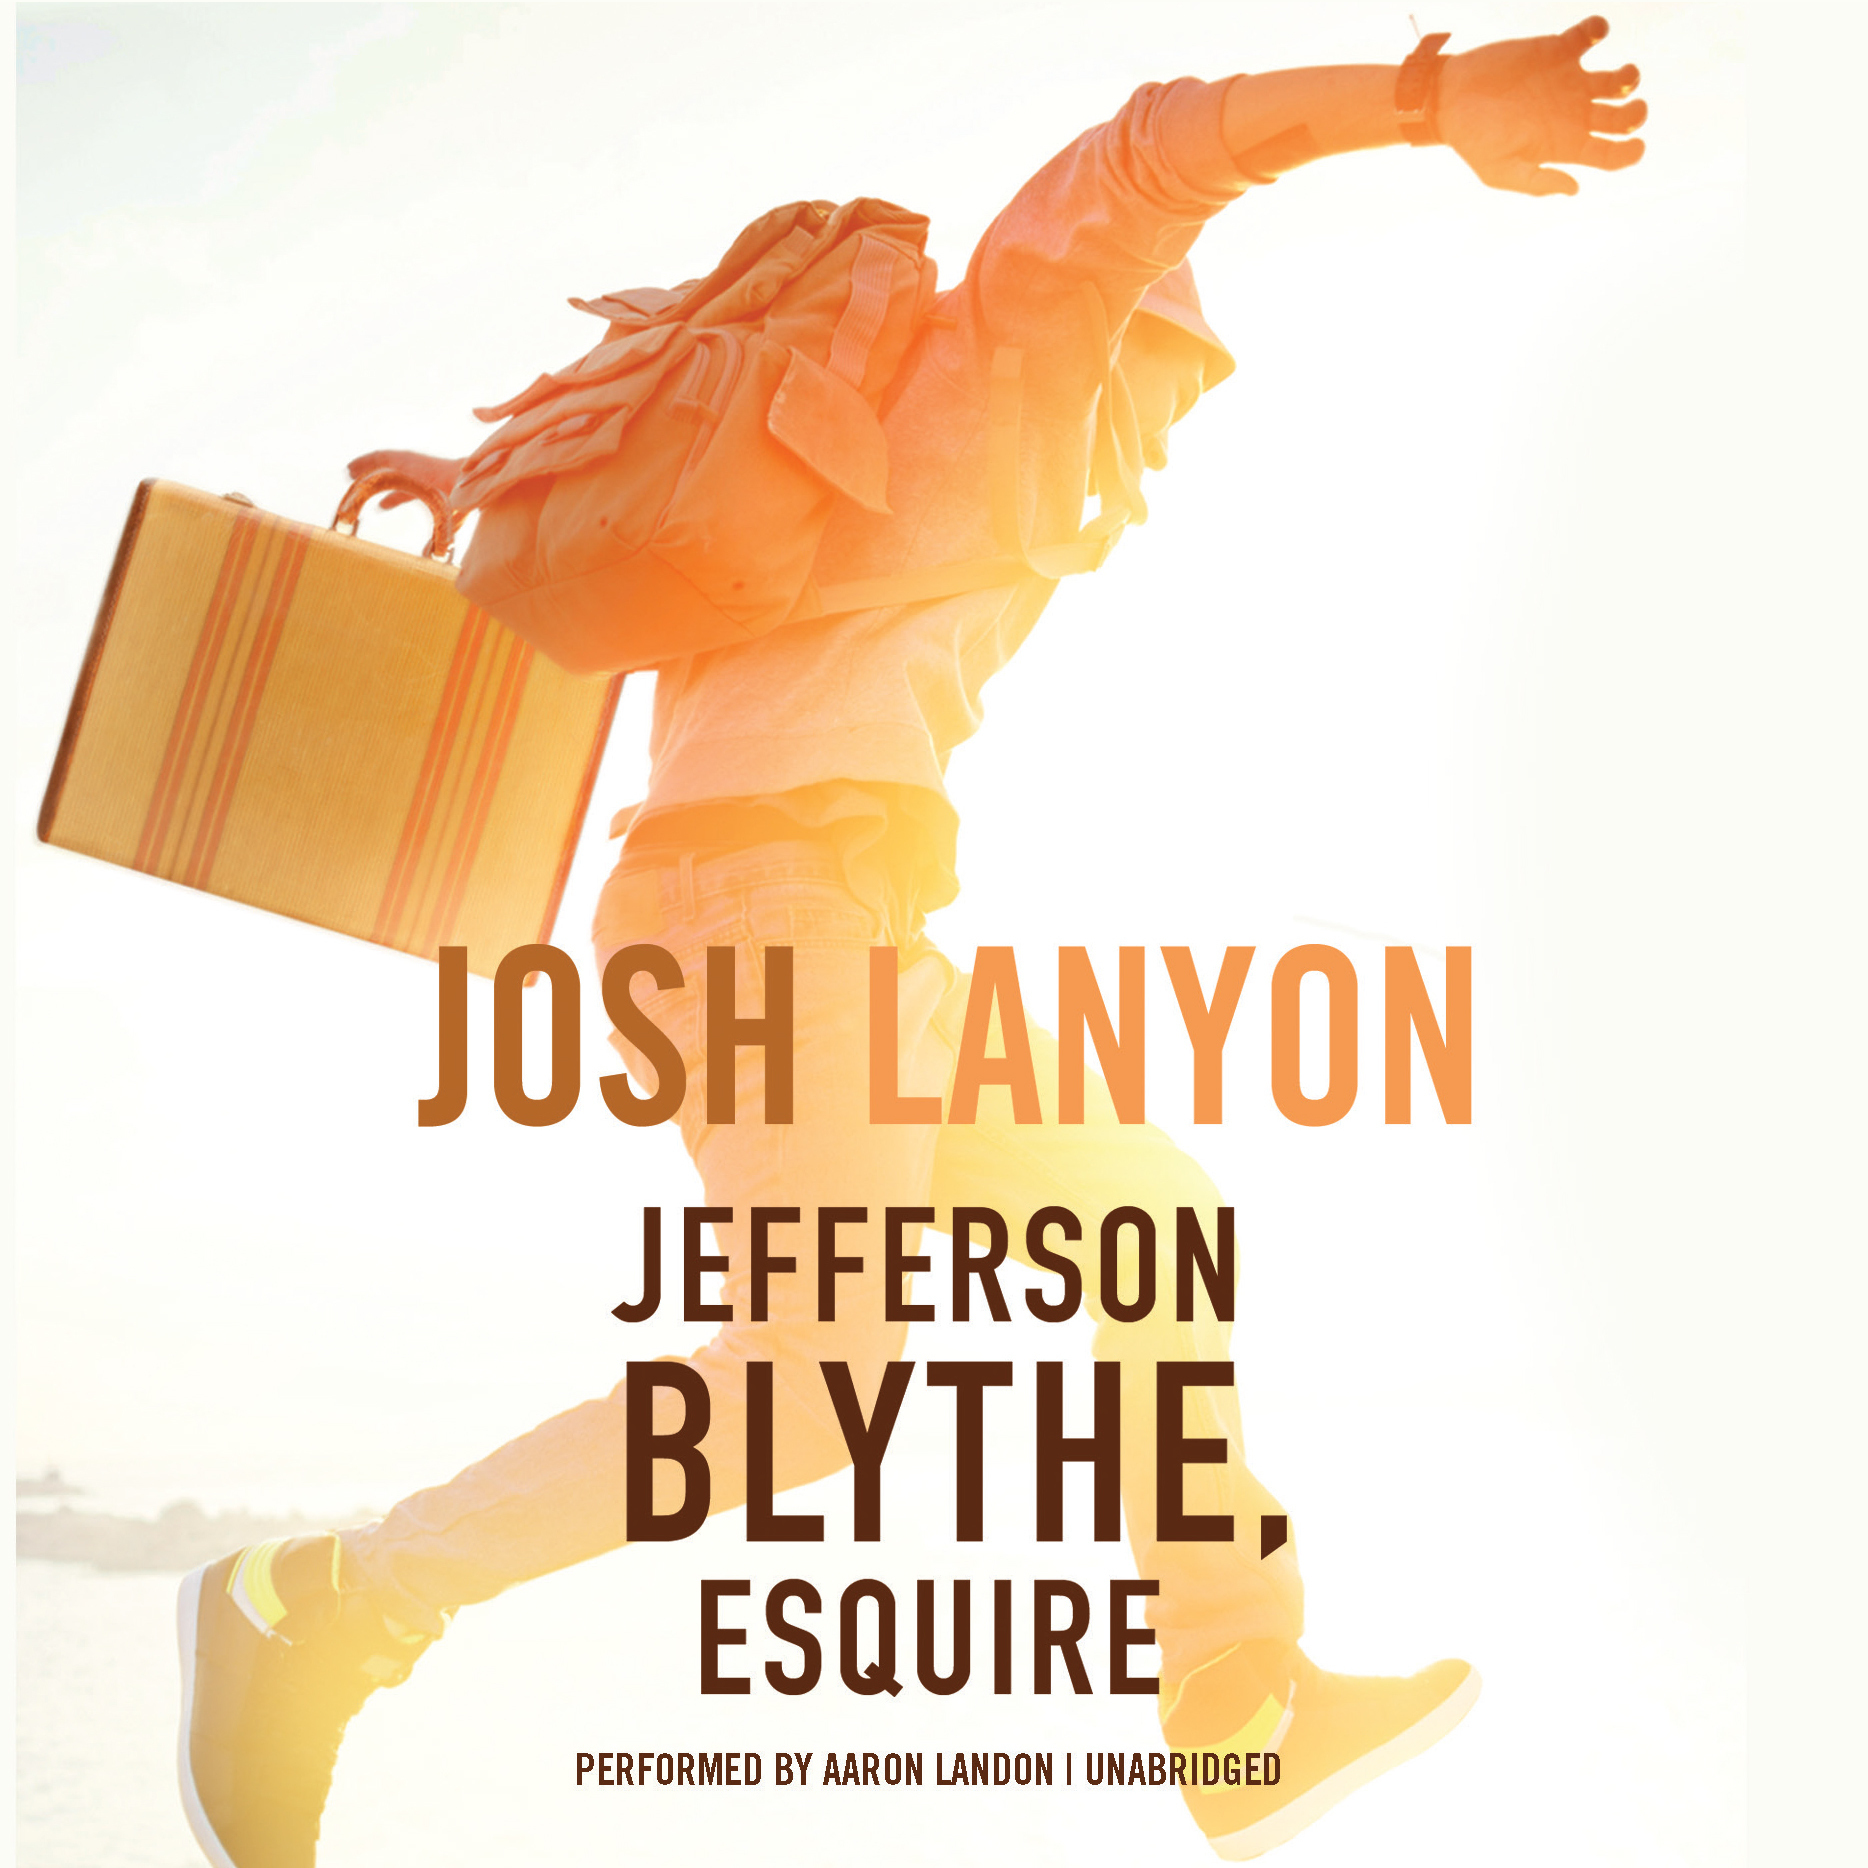 Printable Jefferson Blythe, Esquire Audiobook Cover Art